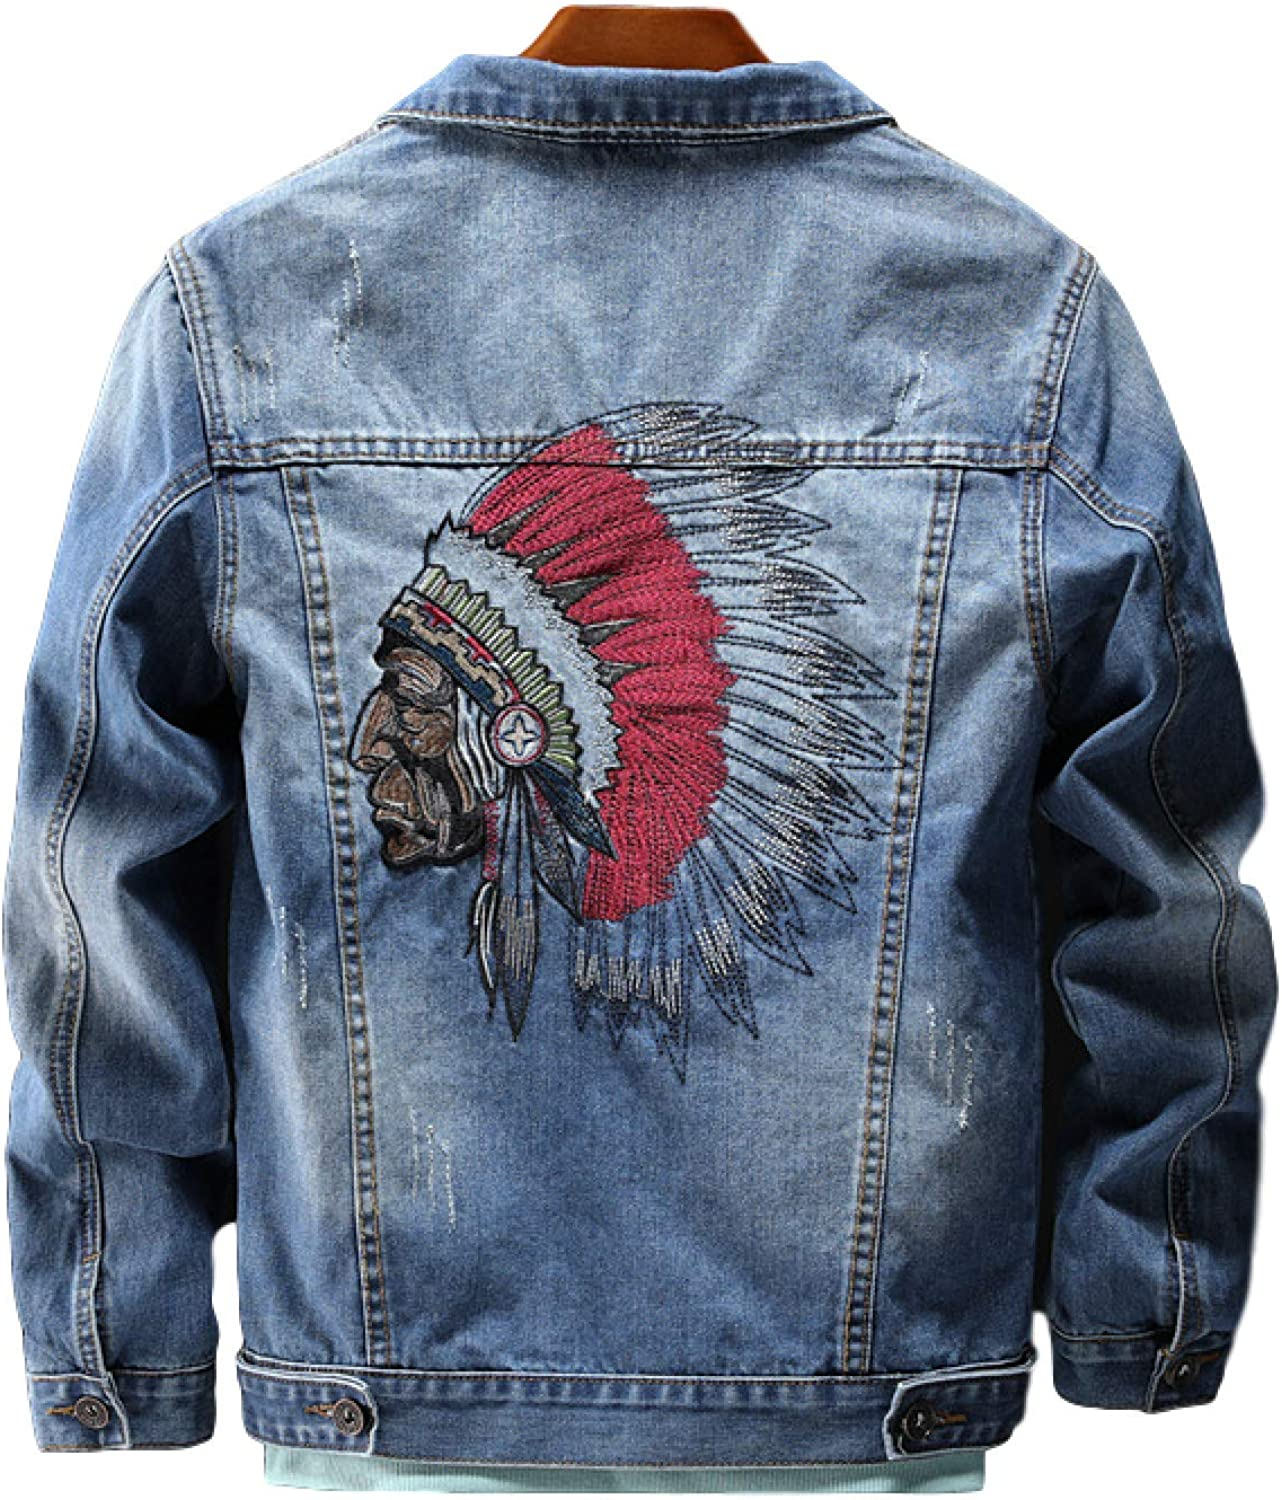 Zestion Men's Denim Jacket Ethnic Embroidery Loose and Comfortable Patchwork Stitching